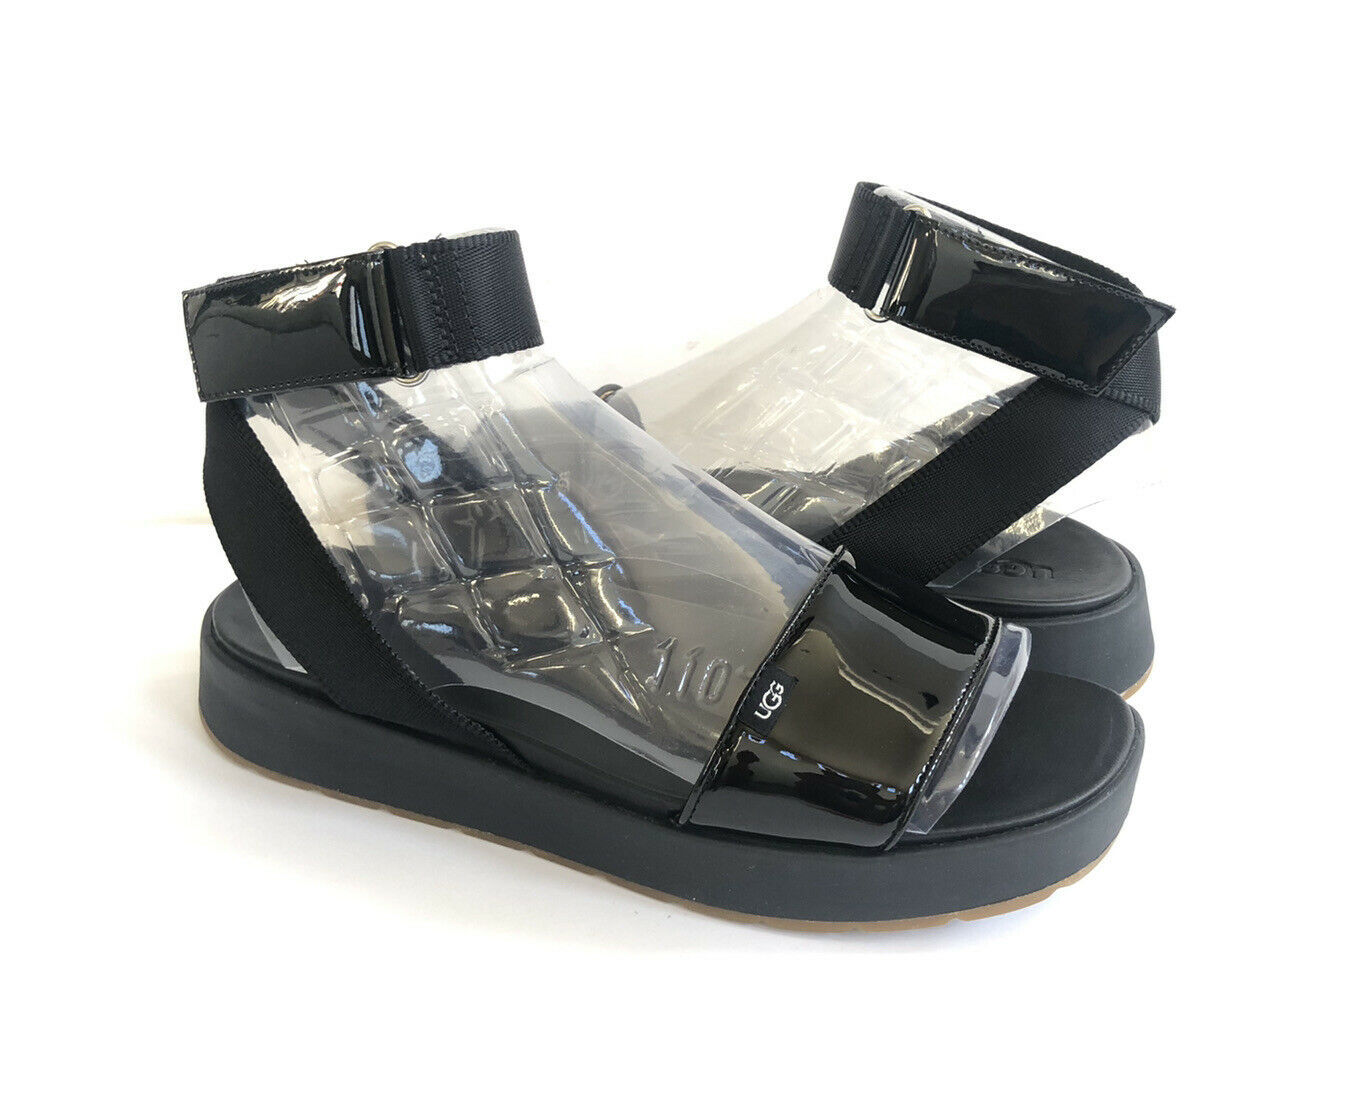 Primary image for UGG LENNOX BLACK PATENT LEATHER ANKLE STRAP SANDALS US 7.5 / EU 38.5 / UK 5.5